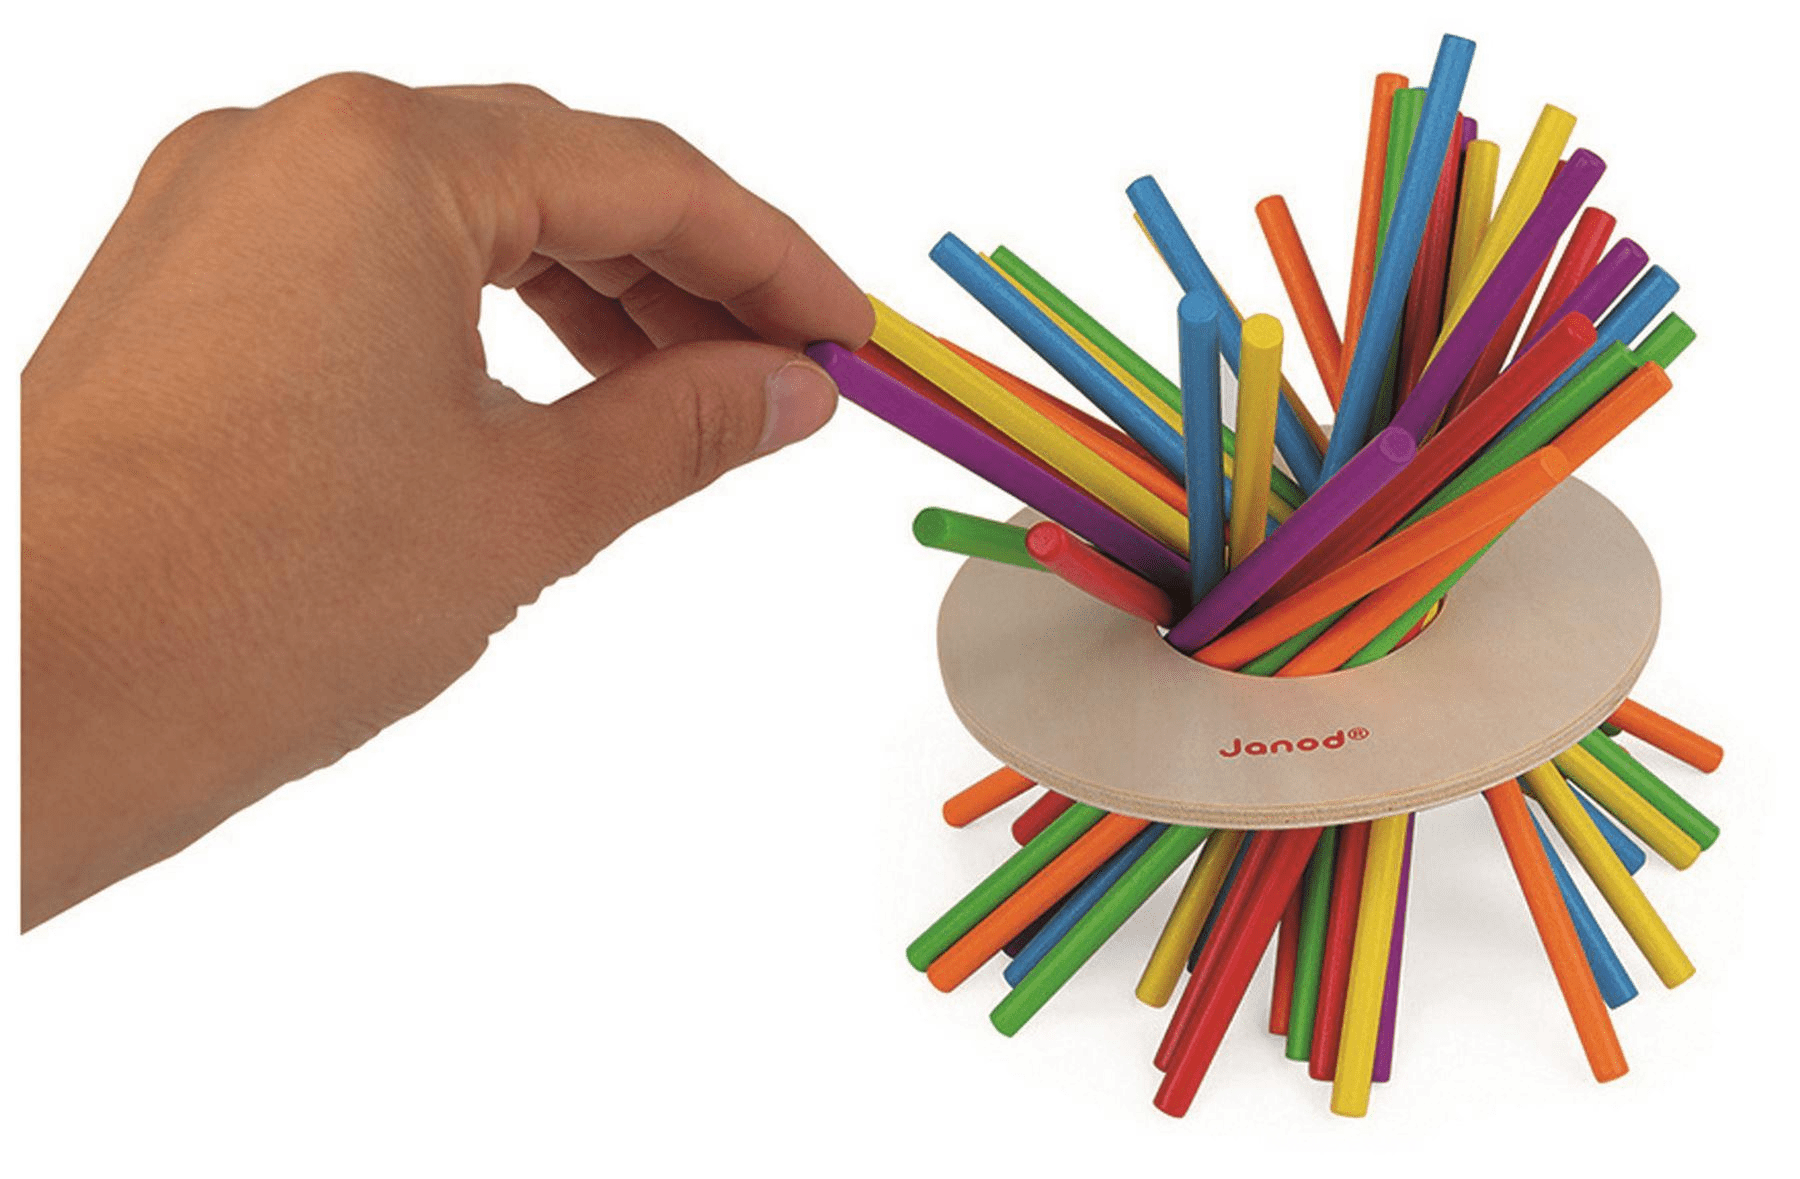 Hand picking colourful sticks.